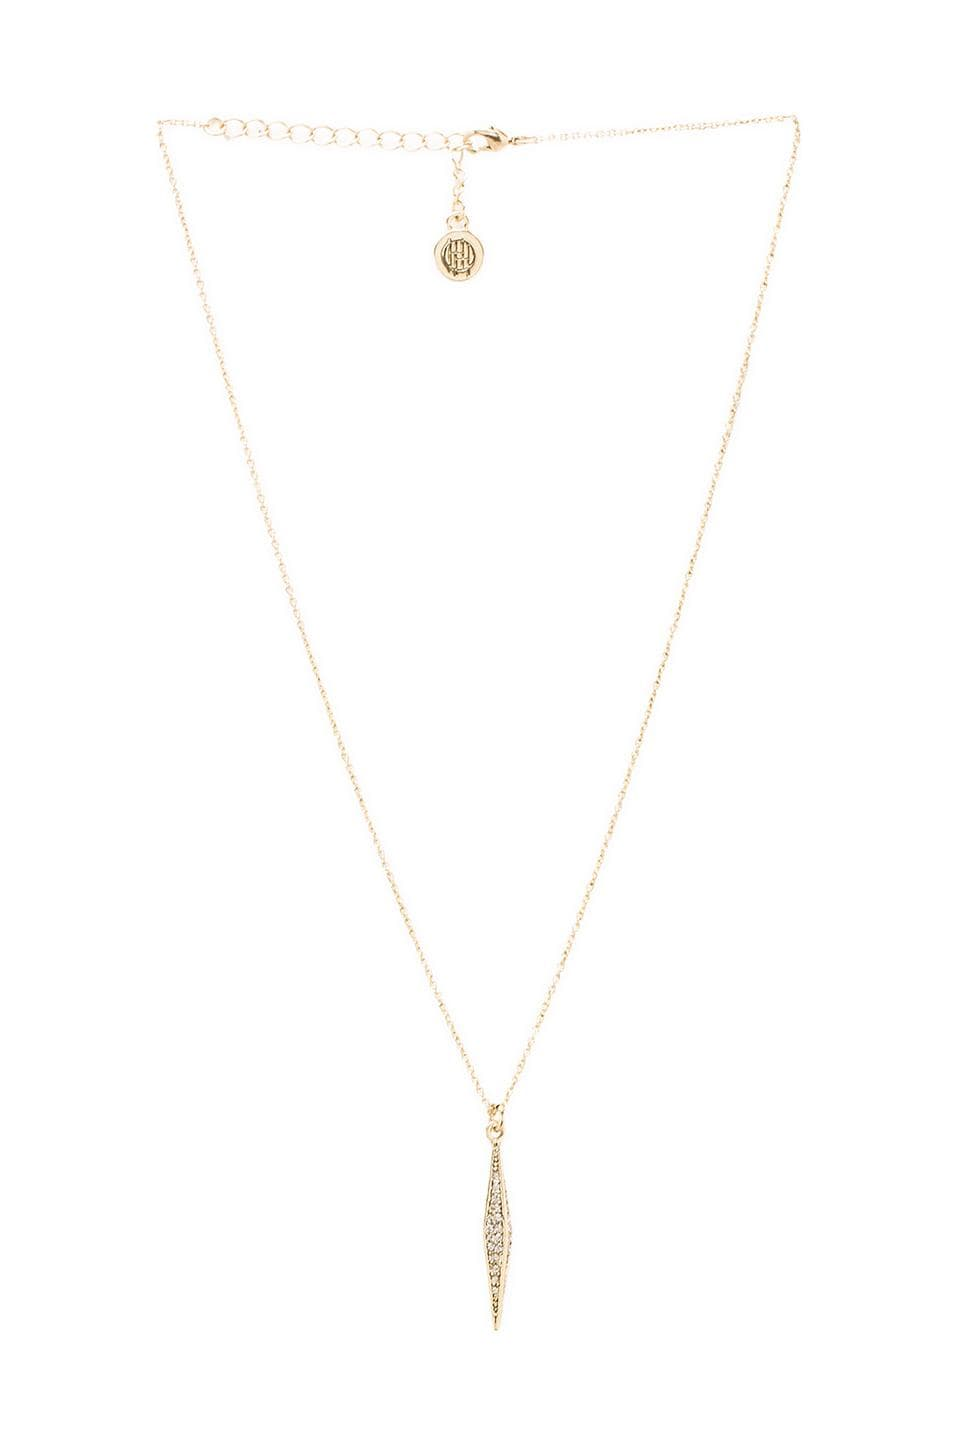 House of Harlow 1960 House of Harlow Sparkling Marquis Pendant Necklace in Gold